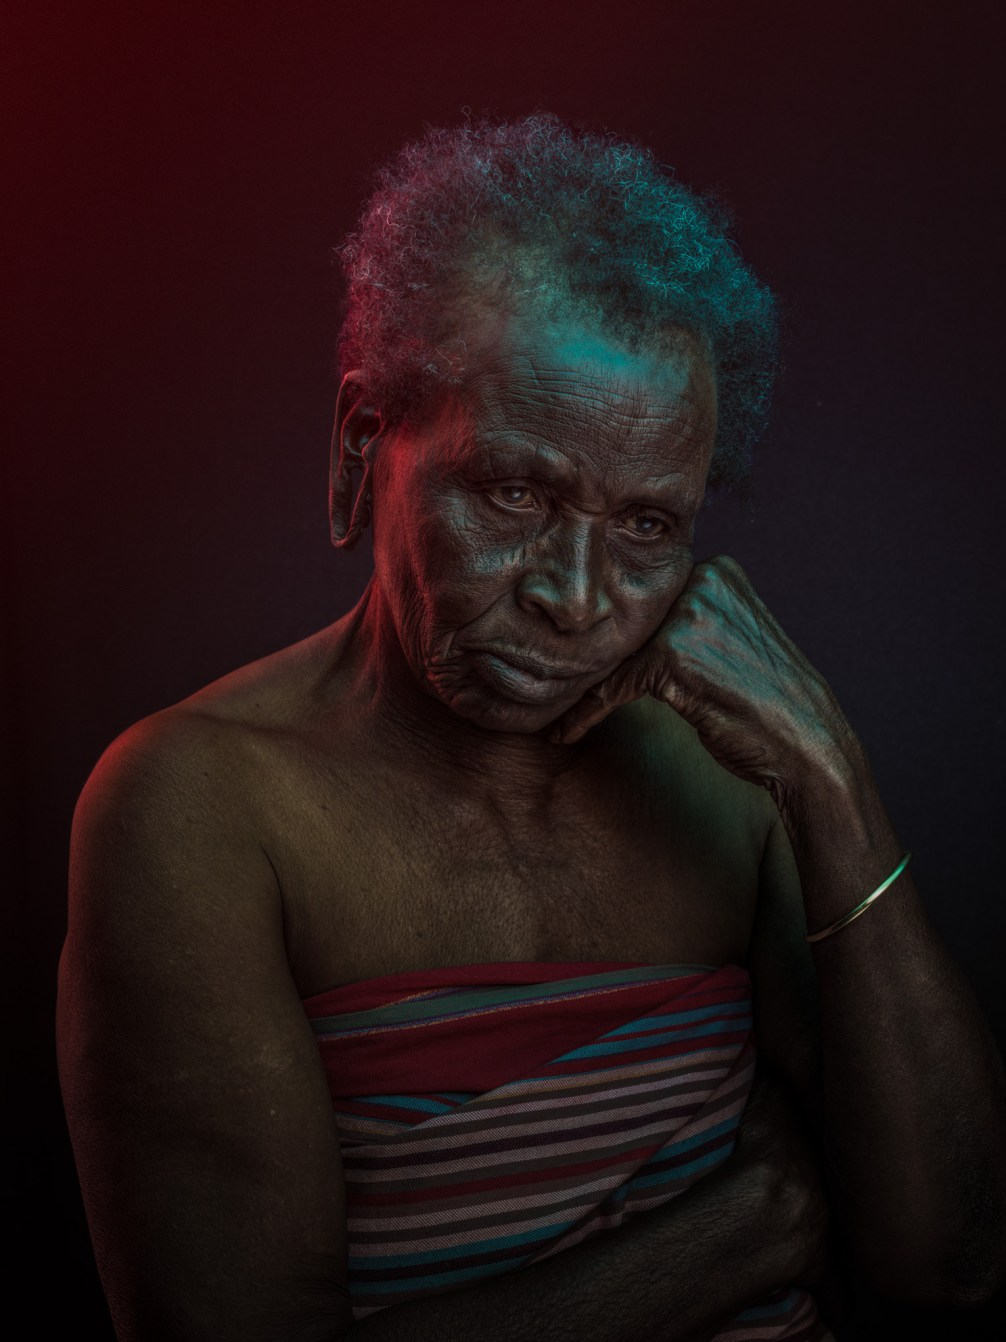 Osbourne Macharia and his haunting ability to capture light. Images courtesy of Osbourne Macharia (K63 Studios). ©OsbourneMacharia